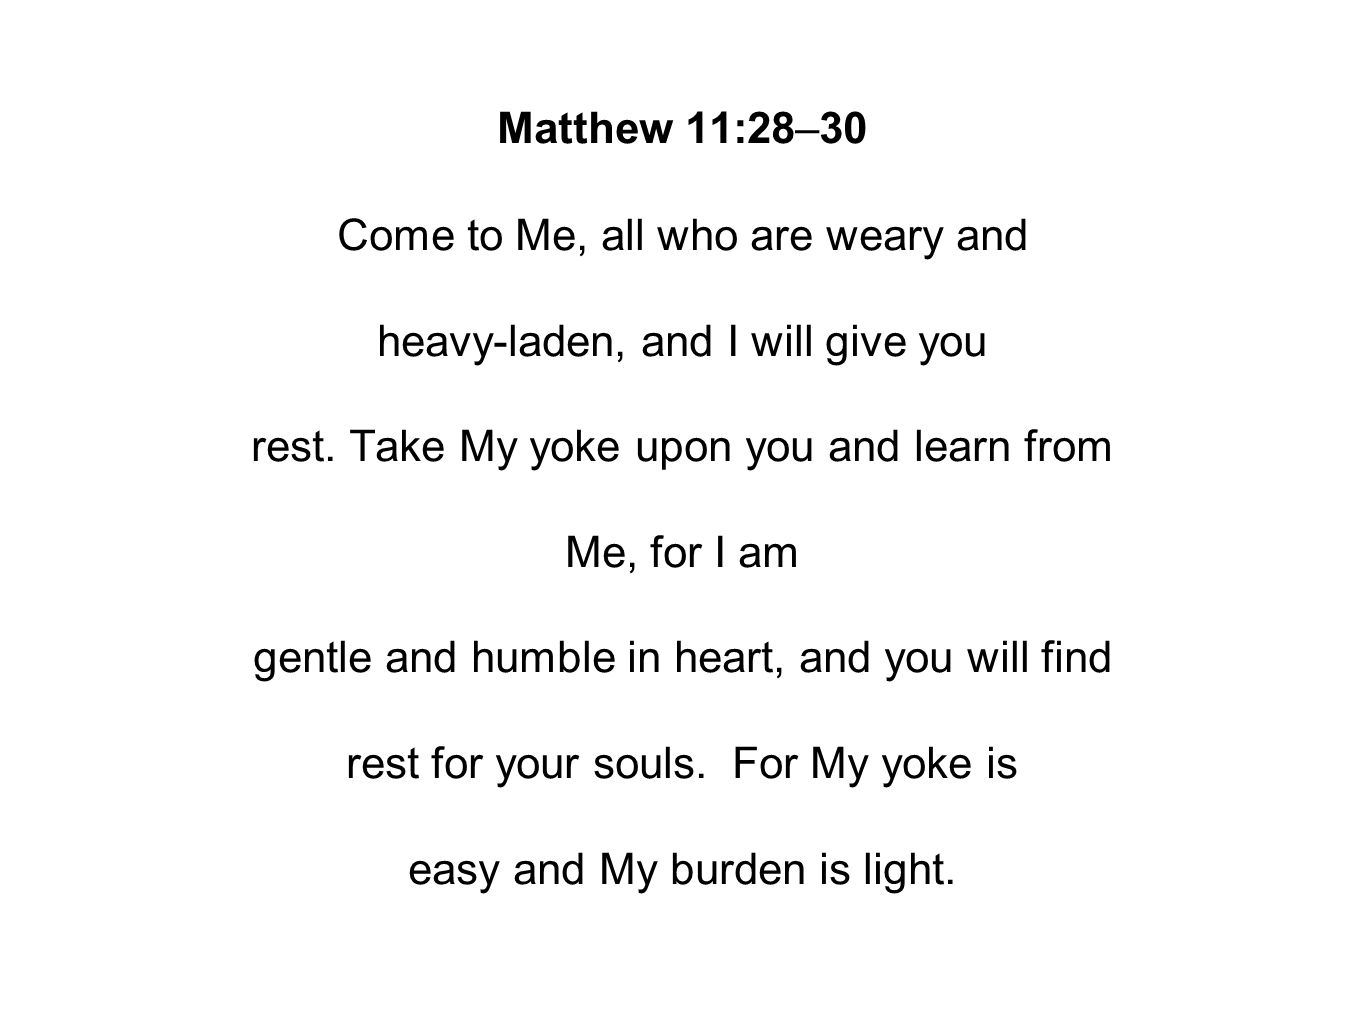 Matthew 11:28–30 Come to Me, all who are weary and heavy-laden, and I will give you rest.